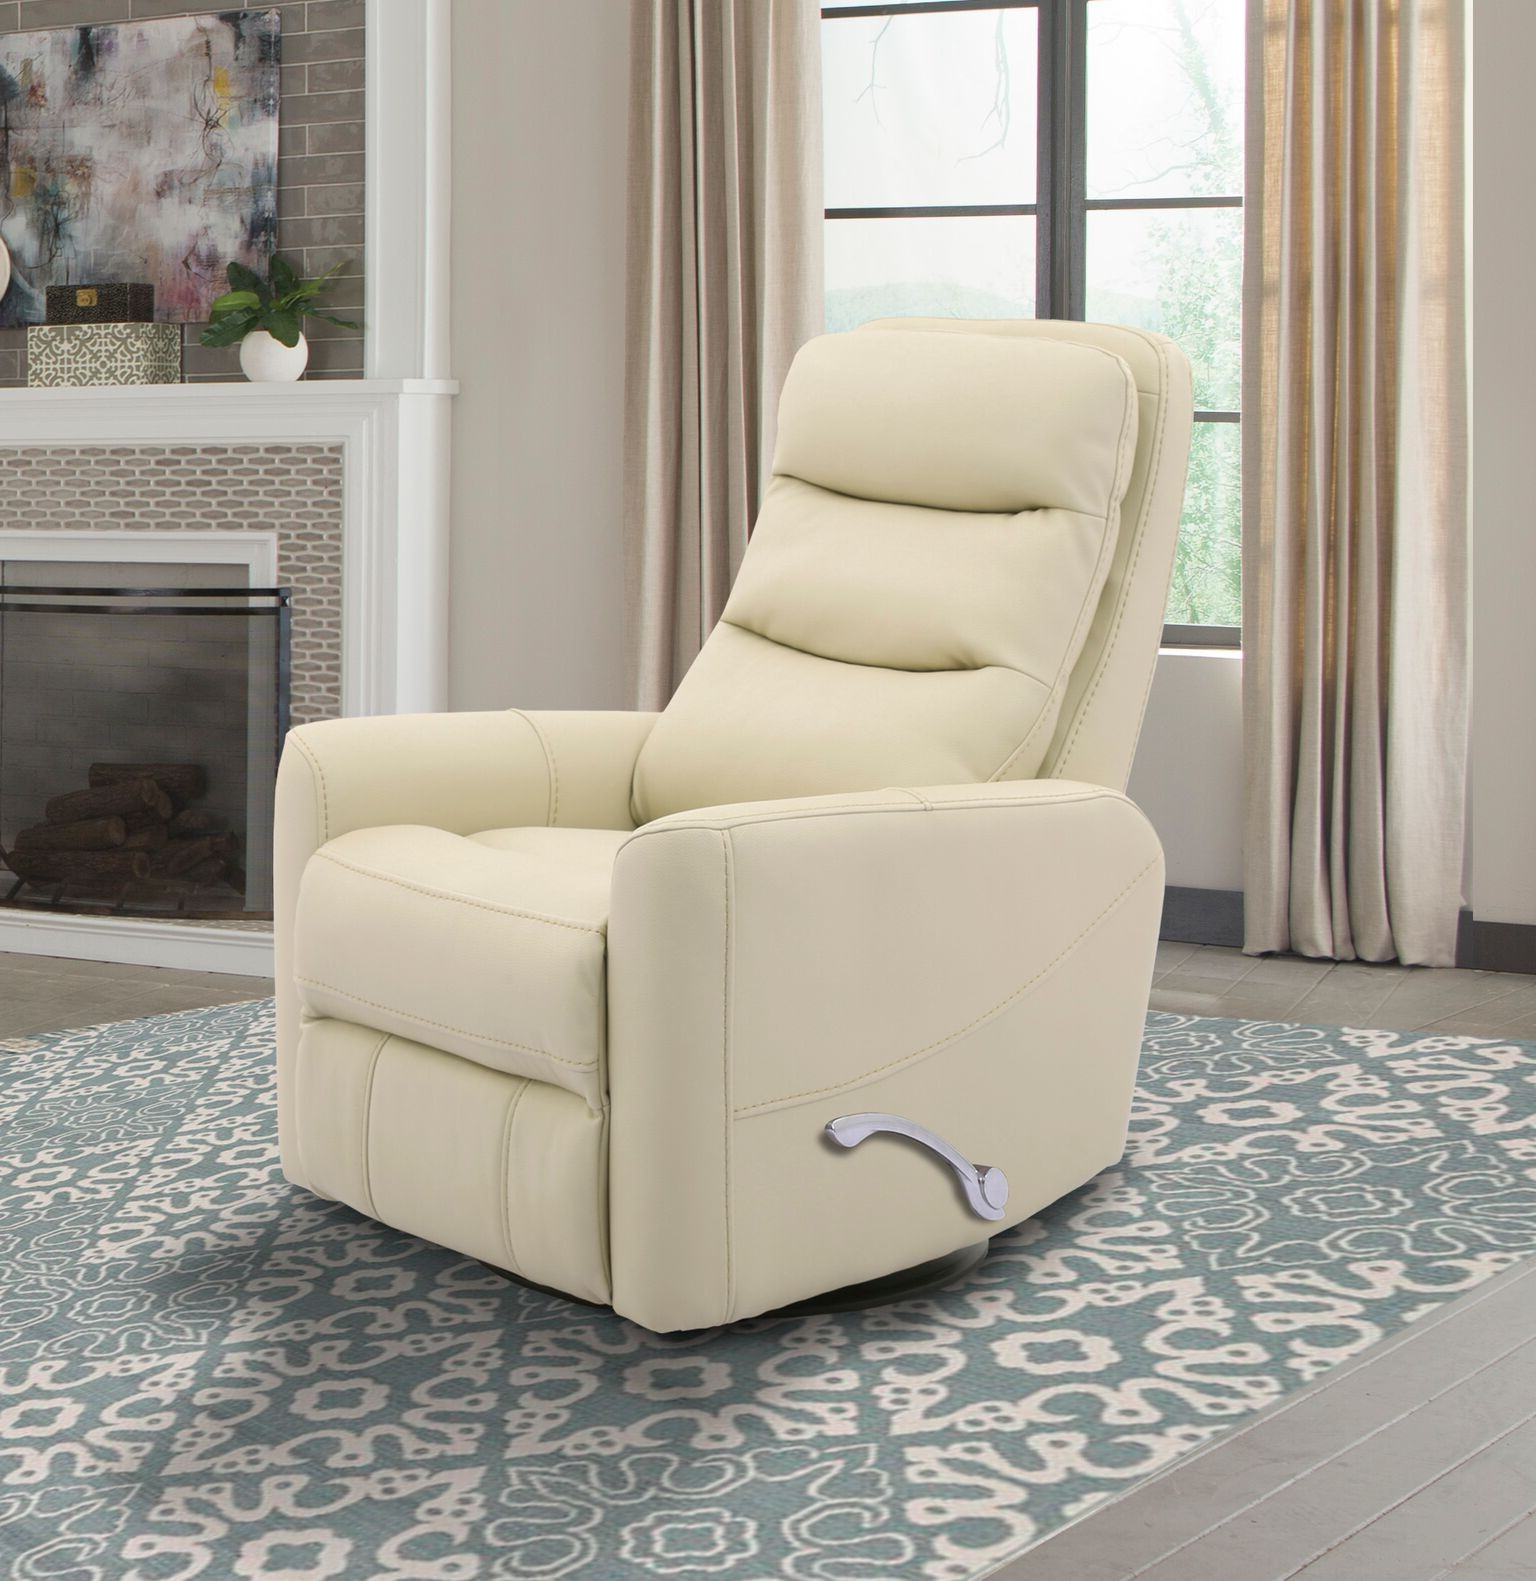 Hercules Oyster Swivel Glider Recliner With Articulating Headrest In Most Current Hercules Chocolate Swivel Glider Recliners (View 5 of 20)